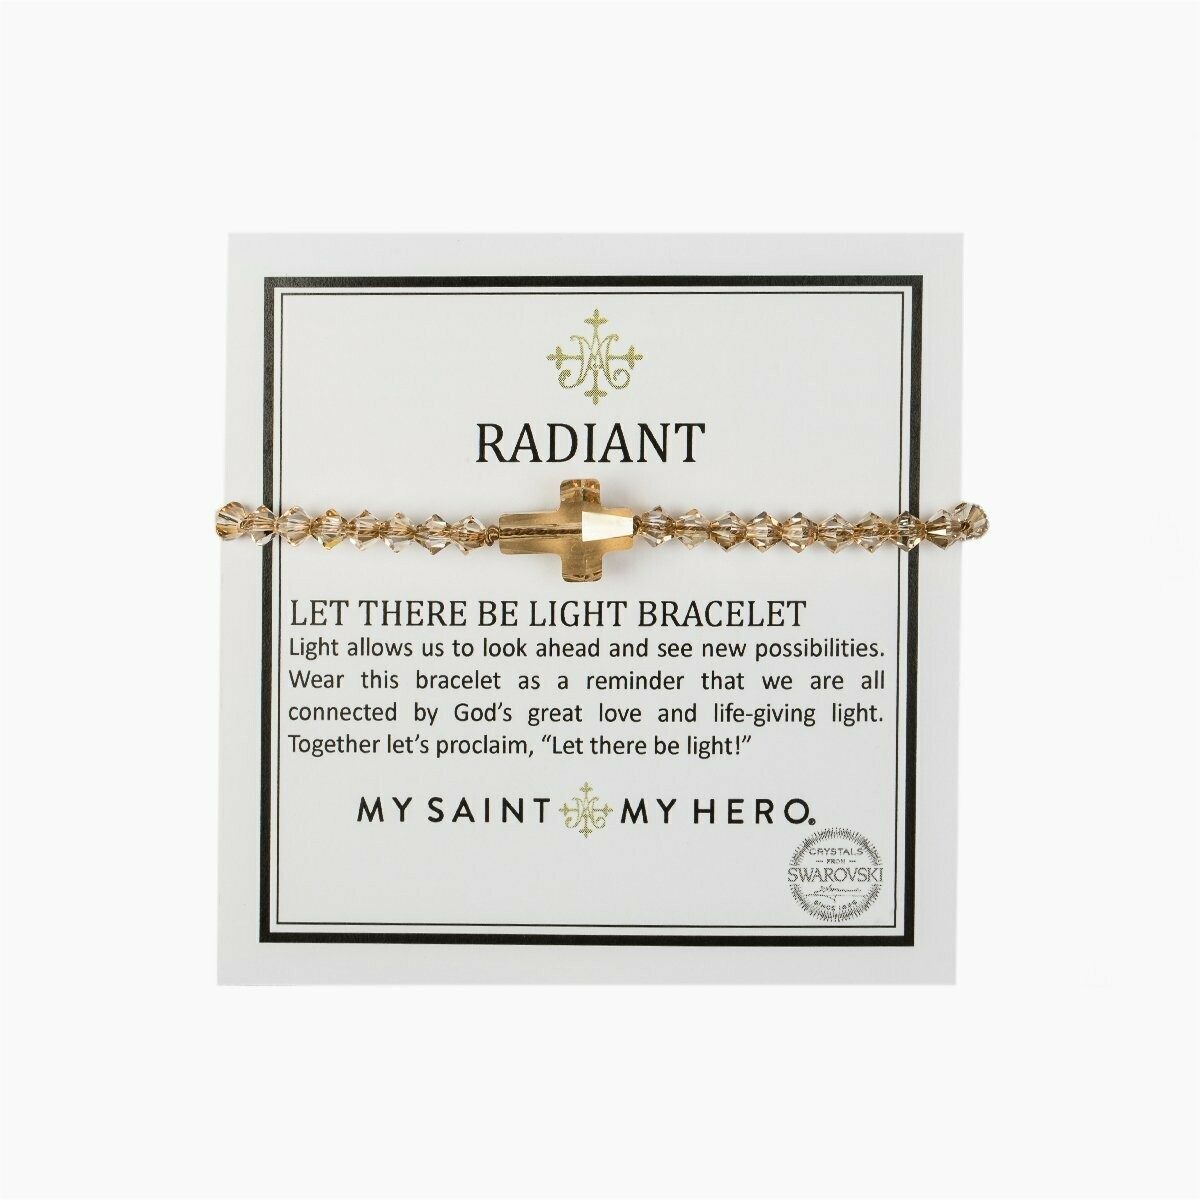 My Saint My Hero Radiant Let There Be Light Bracelet _ Golden Shadow